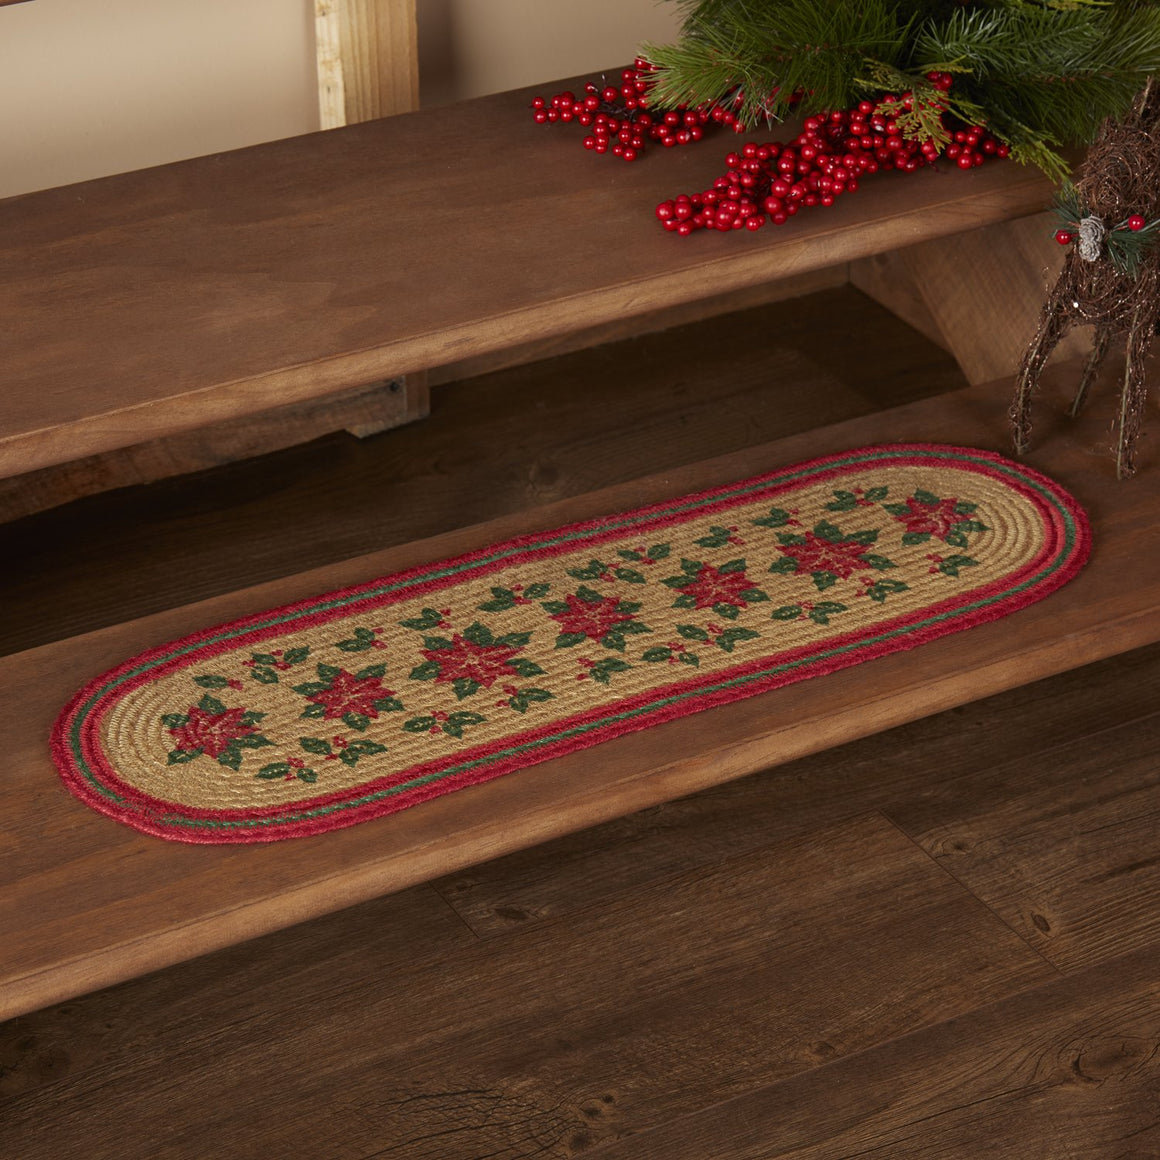 Poinsettia Jute Stair Tread Oval Latex 8.5x27